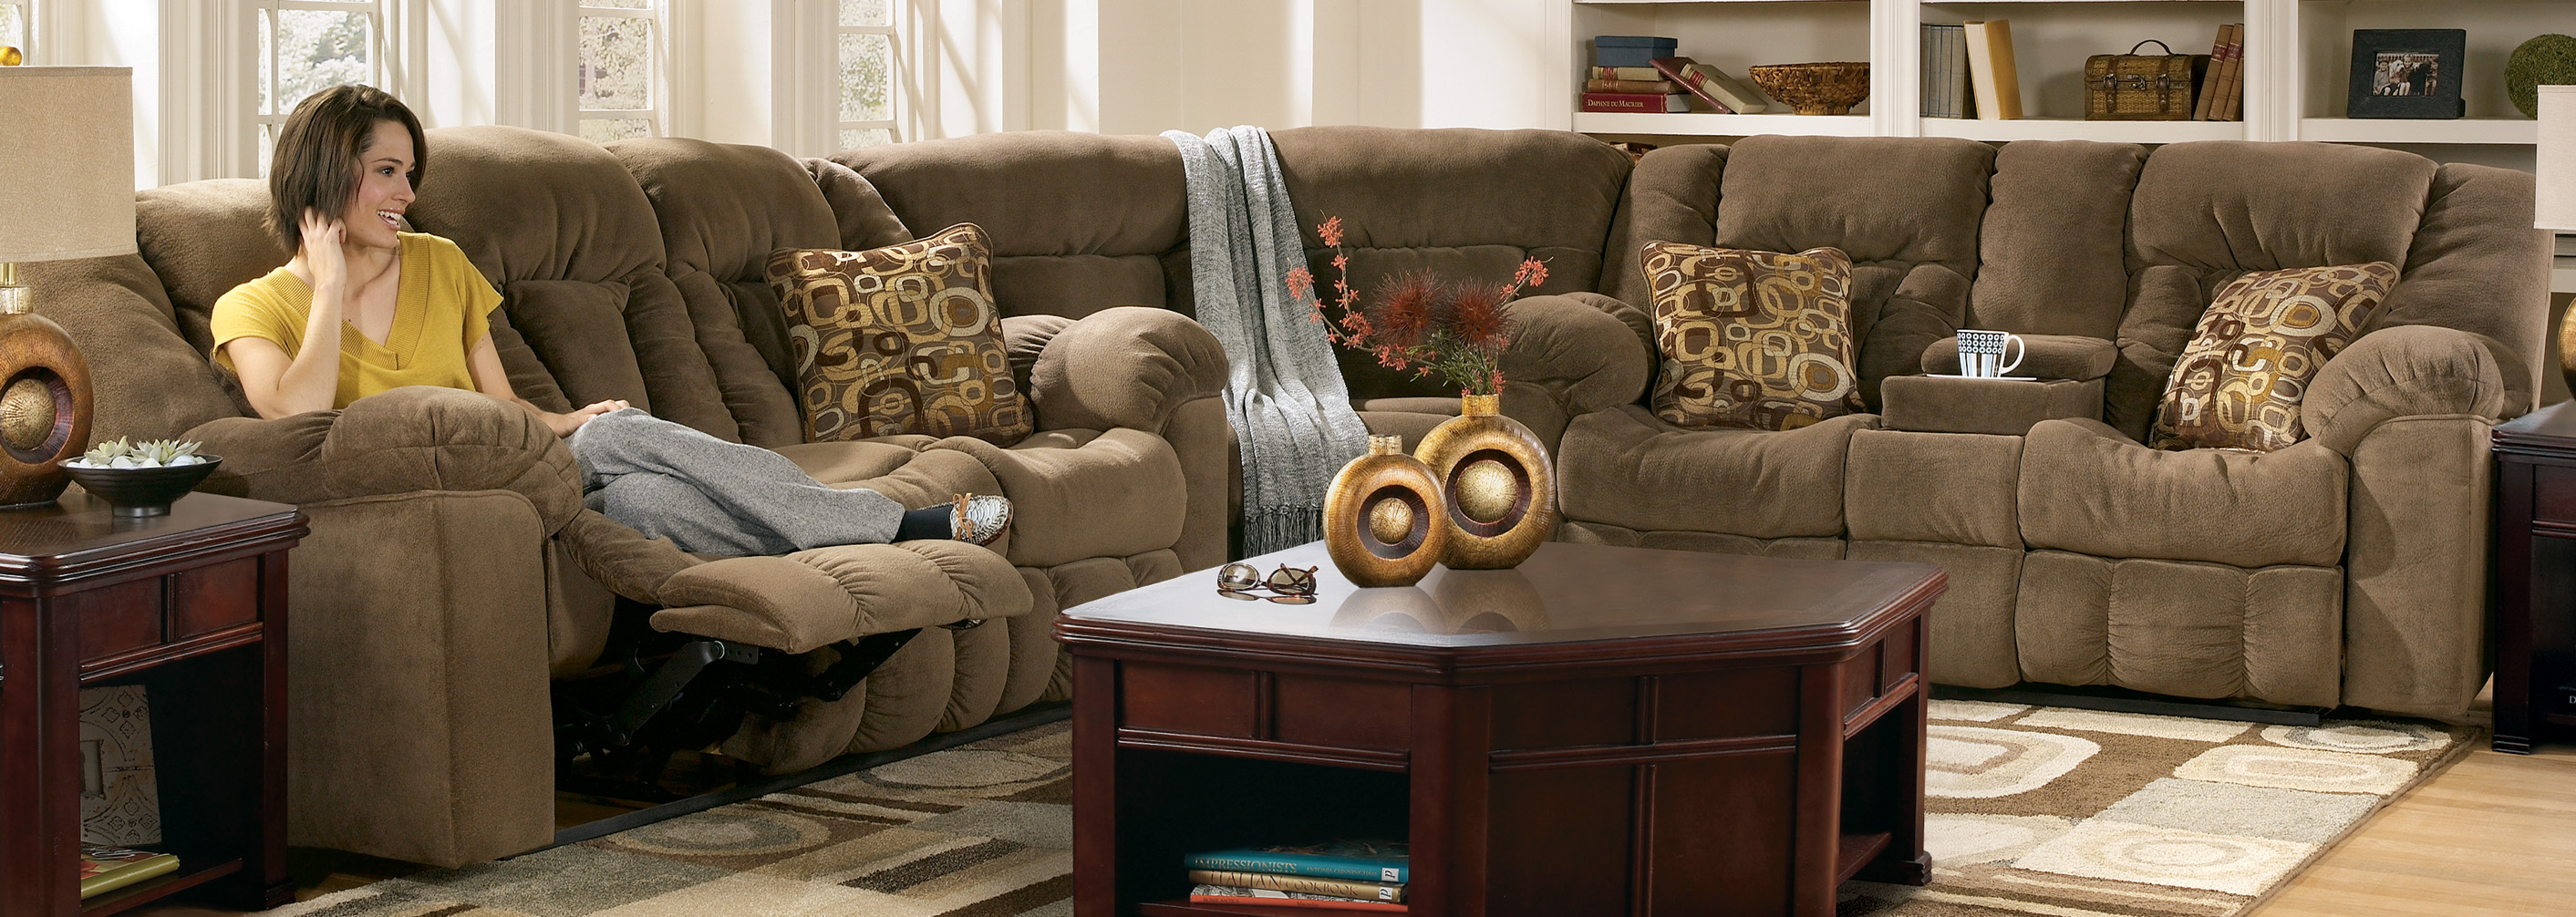 Furniture Elegant Brown Sectional Couches With Cushions And